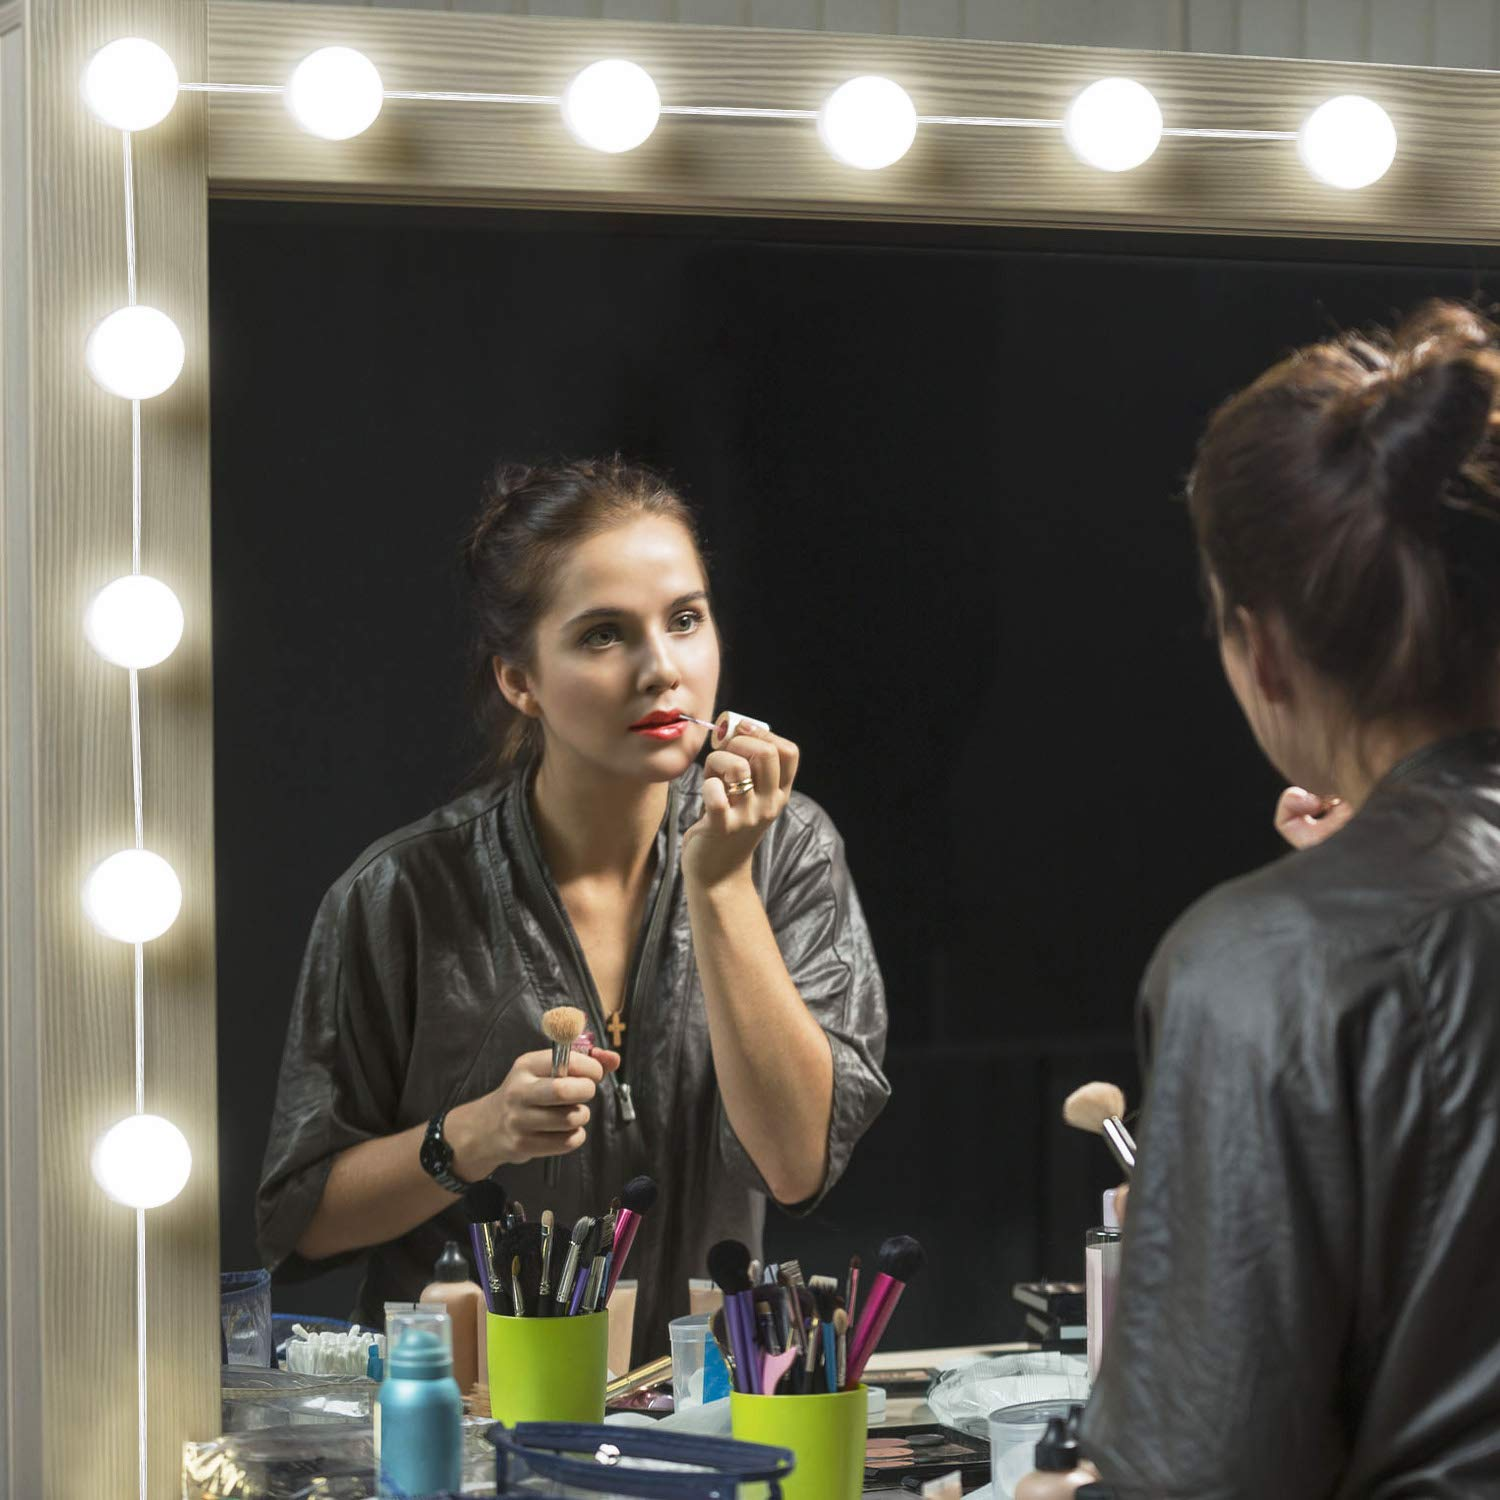 DIY LED Vanity Mirror Lights Kit, Arichomy Makeup Light with 10 Dimmable Bulbs and Touch Dimmer for Makeup Vanity Table Set in Dressing Room (Mirror Not Included)